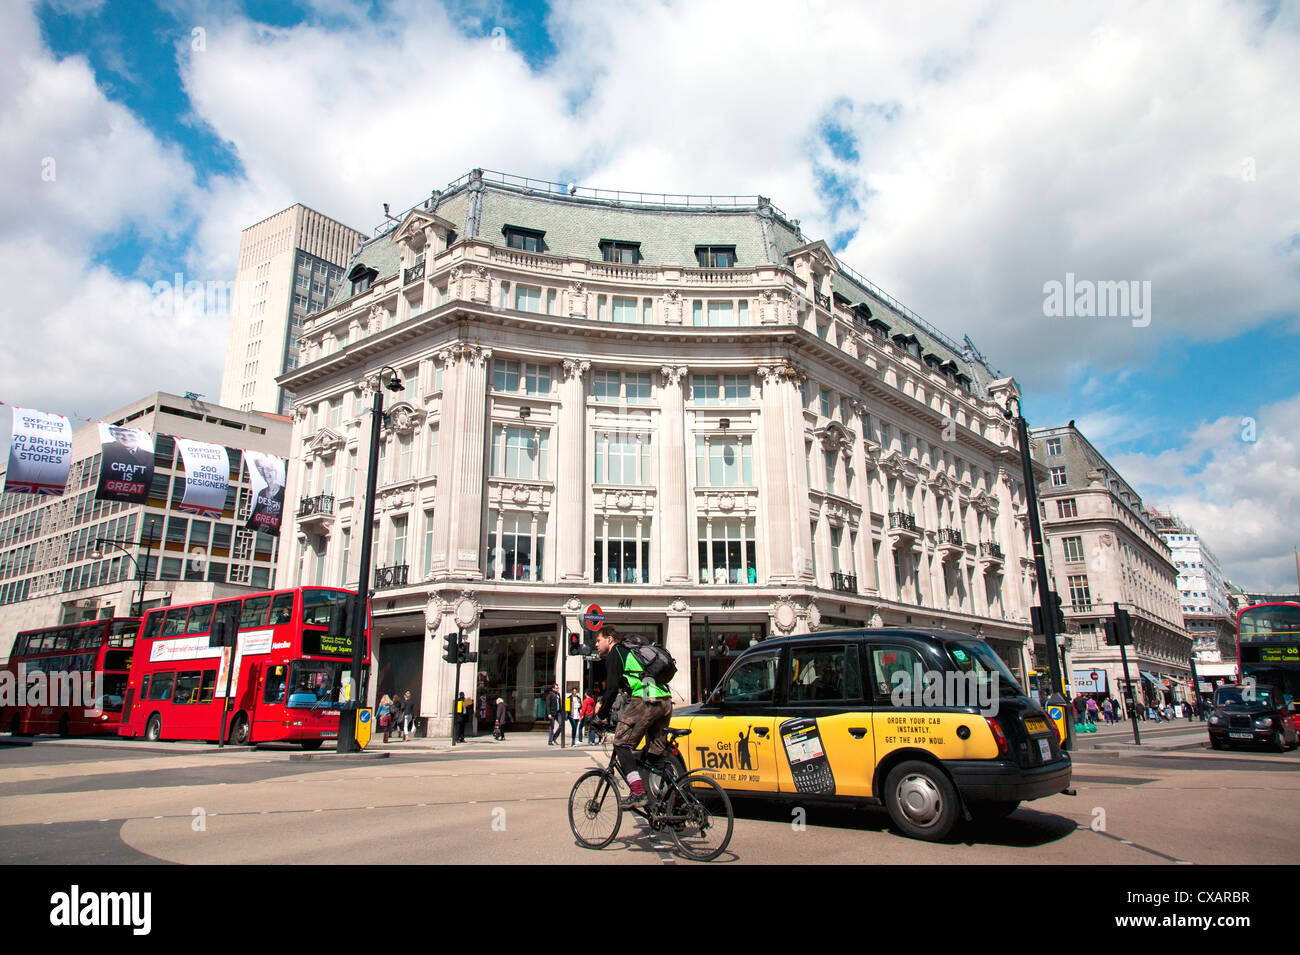 Diagonal pedestrian crossing at Oxford Circus, London, England, United Kingdom, Europe - Stock Image